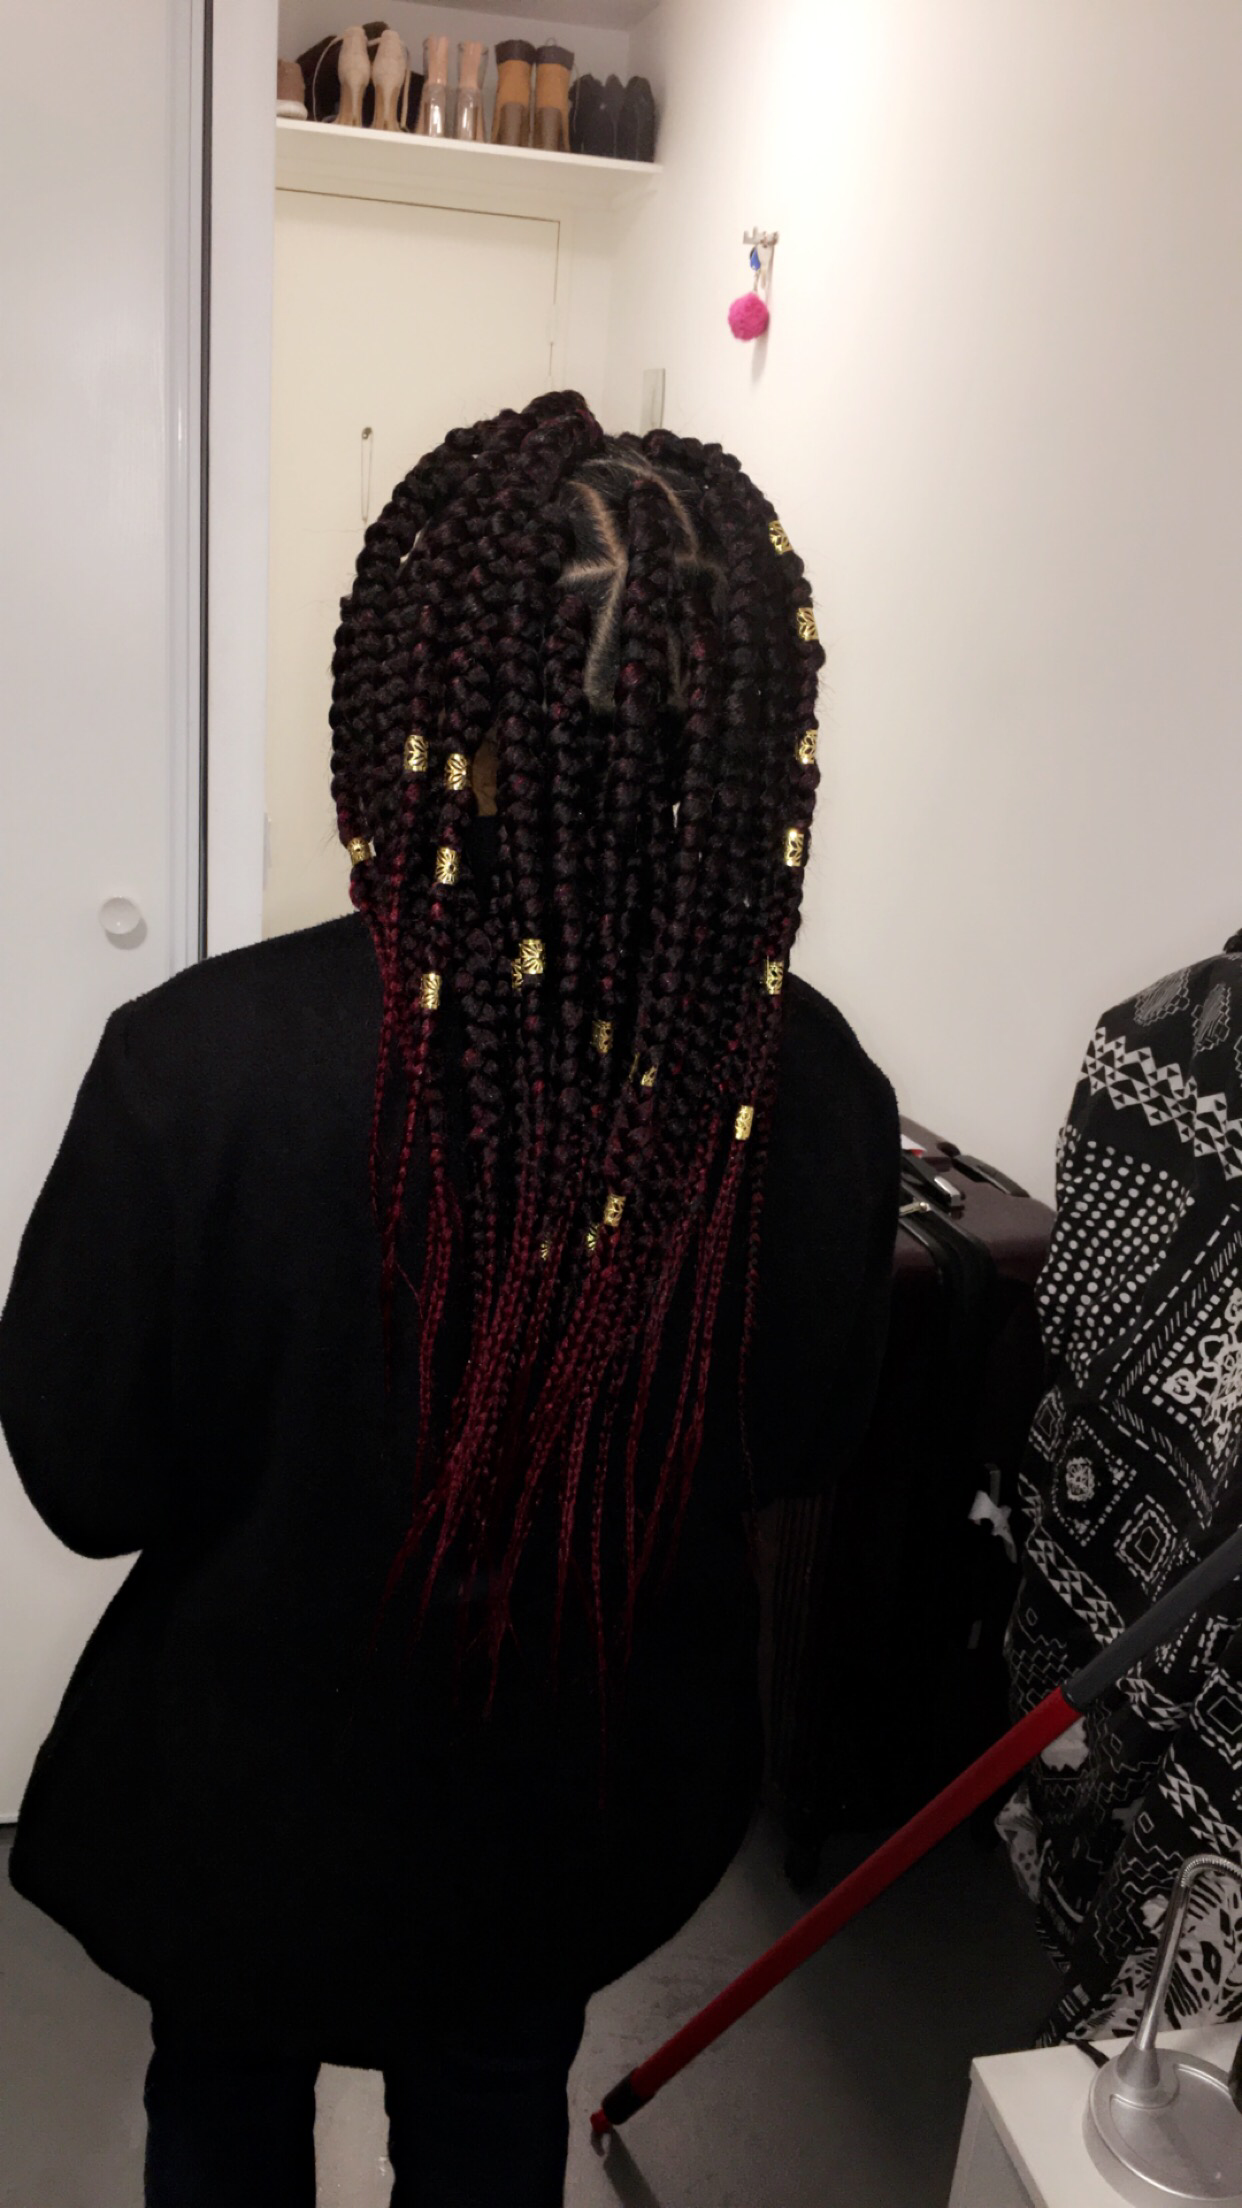 salon de coiffure afro tresse tresses box braids crochet braids vanilles tissages paris 75 77 78 91 92 93 94 95 XXFXVHLE